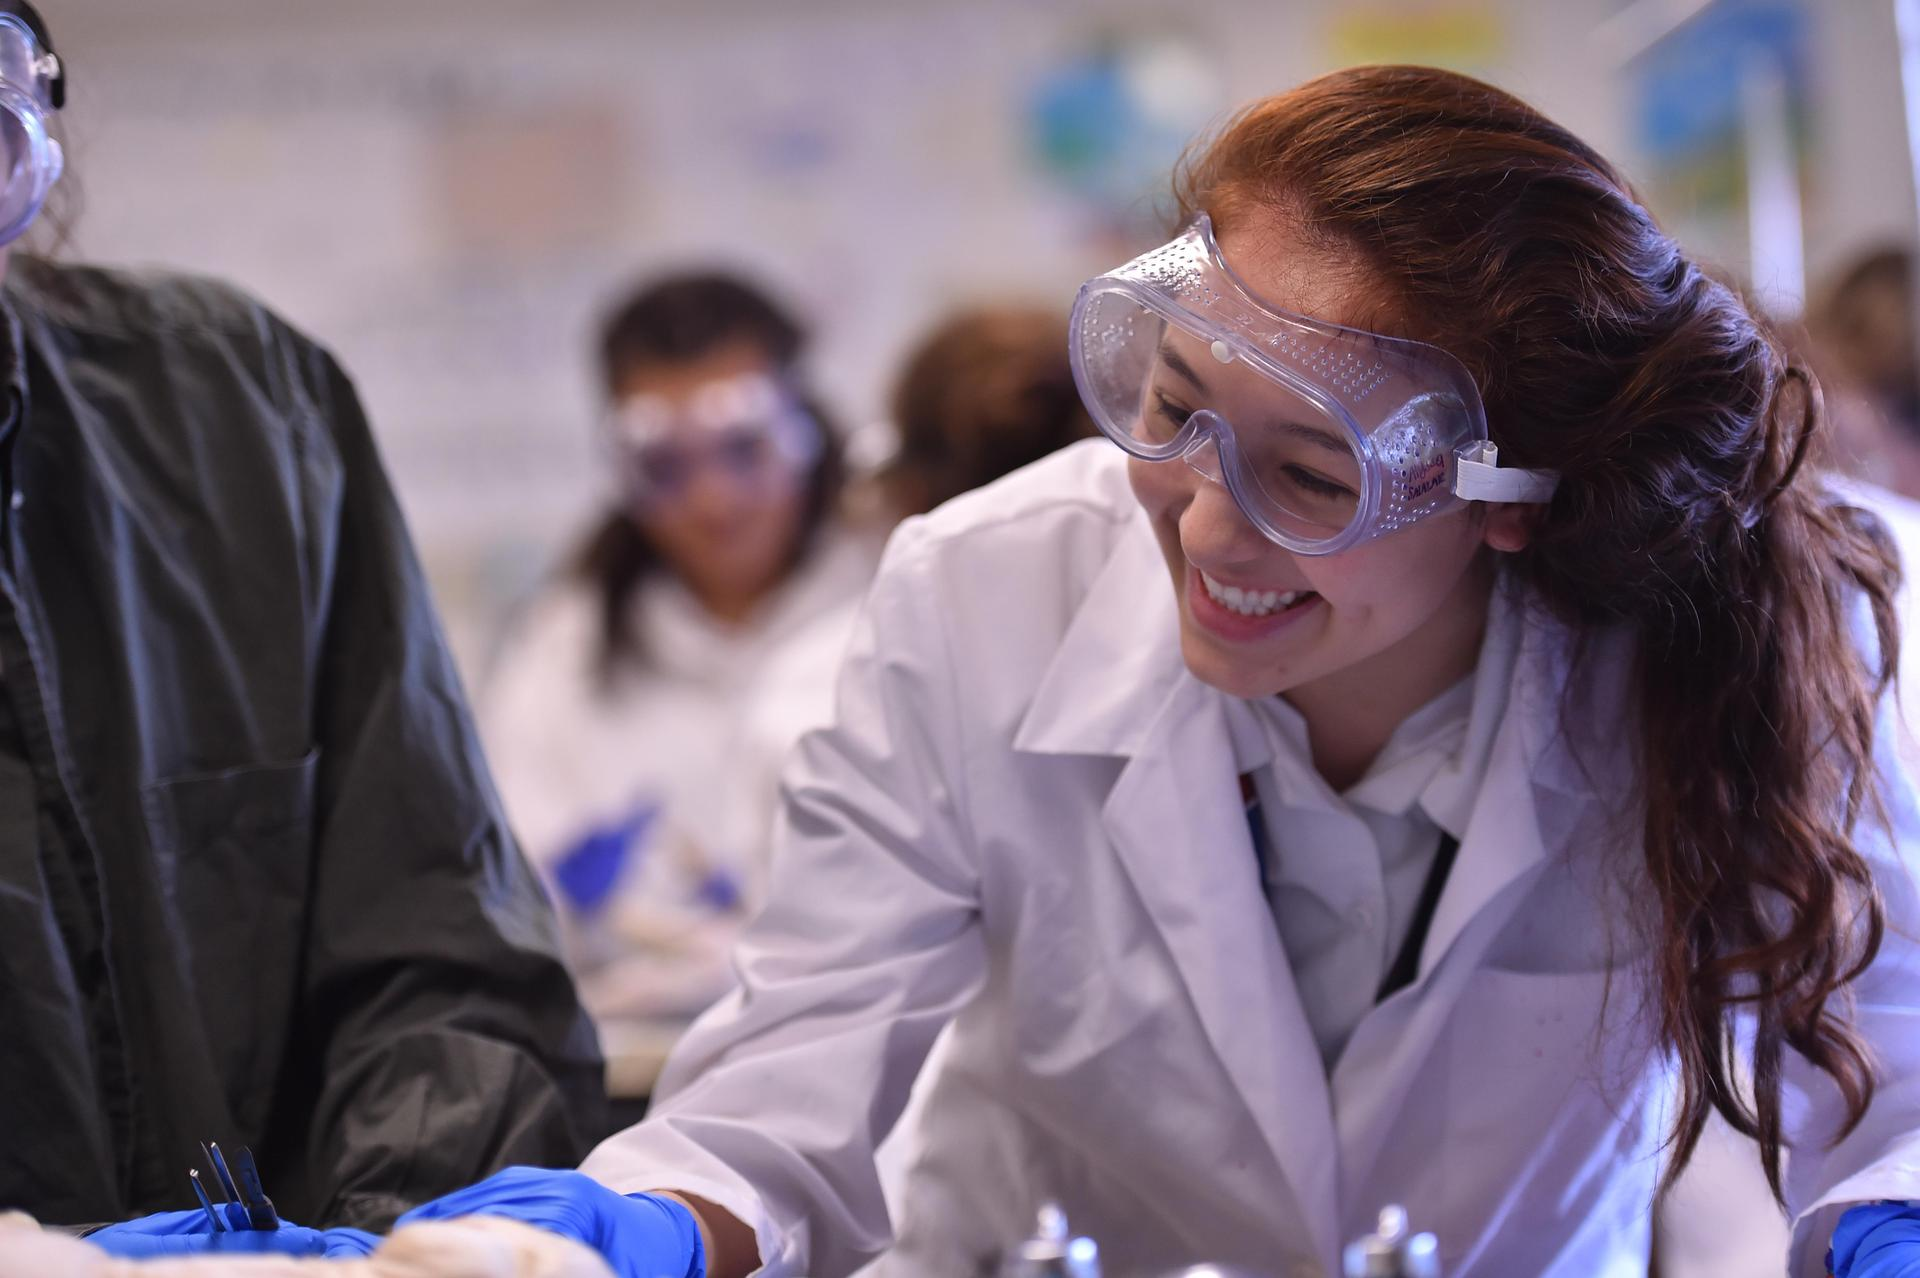 Student experiments in science class